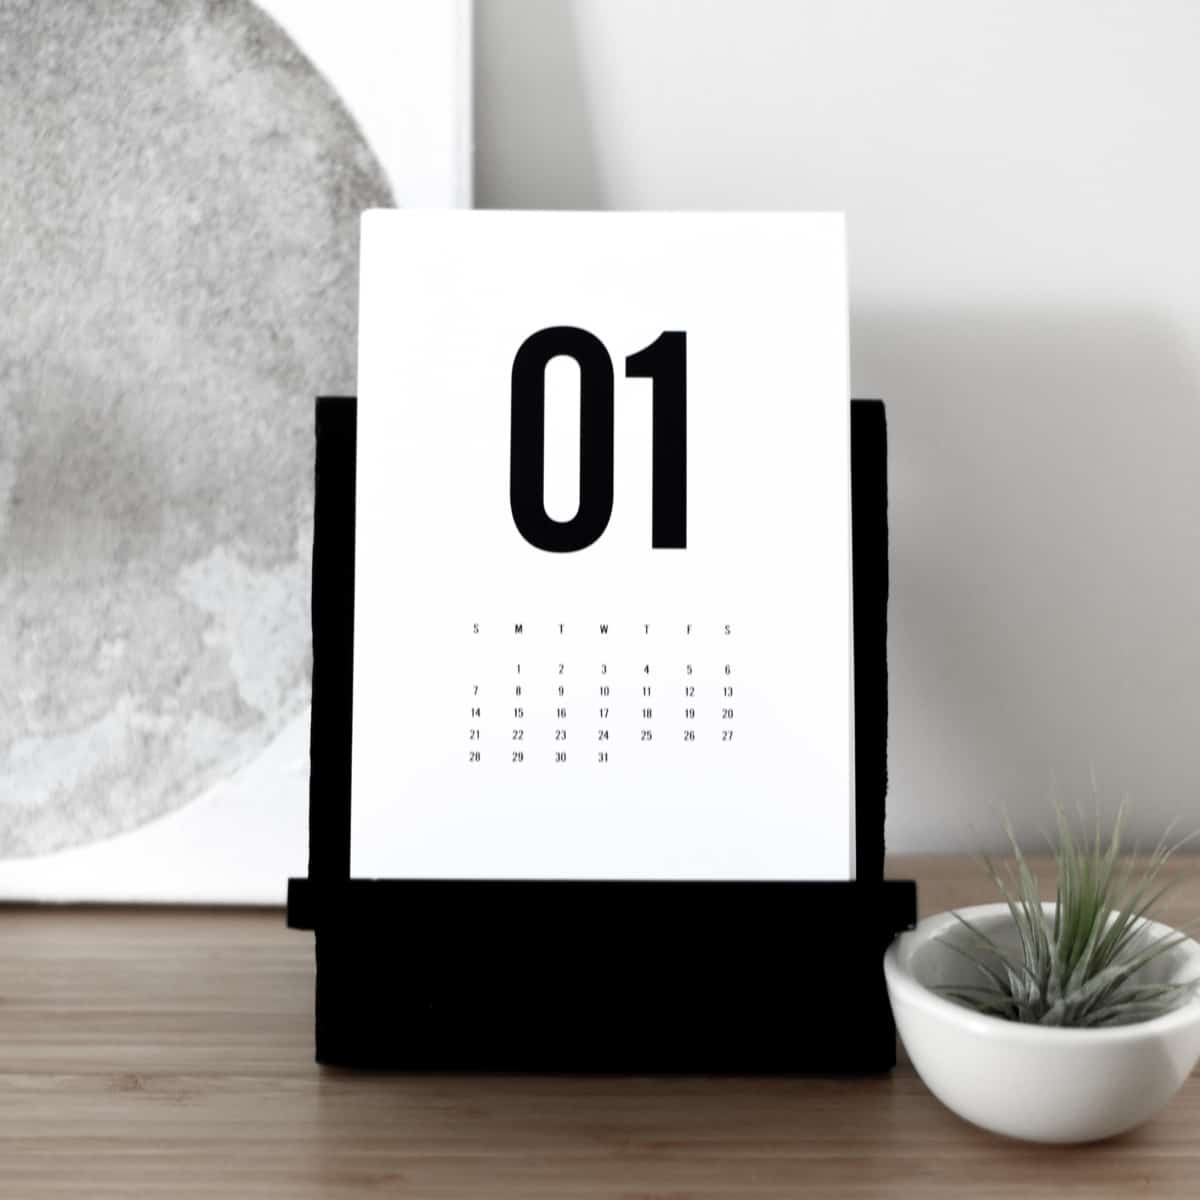 DIY Calendar Stand (With Free Calendar Printable by Flinthouse Design!)